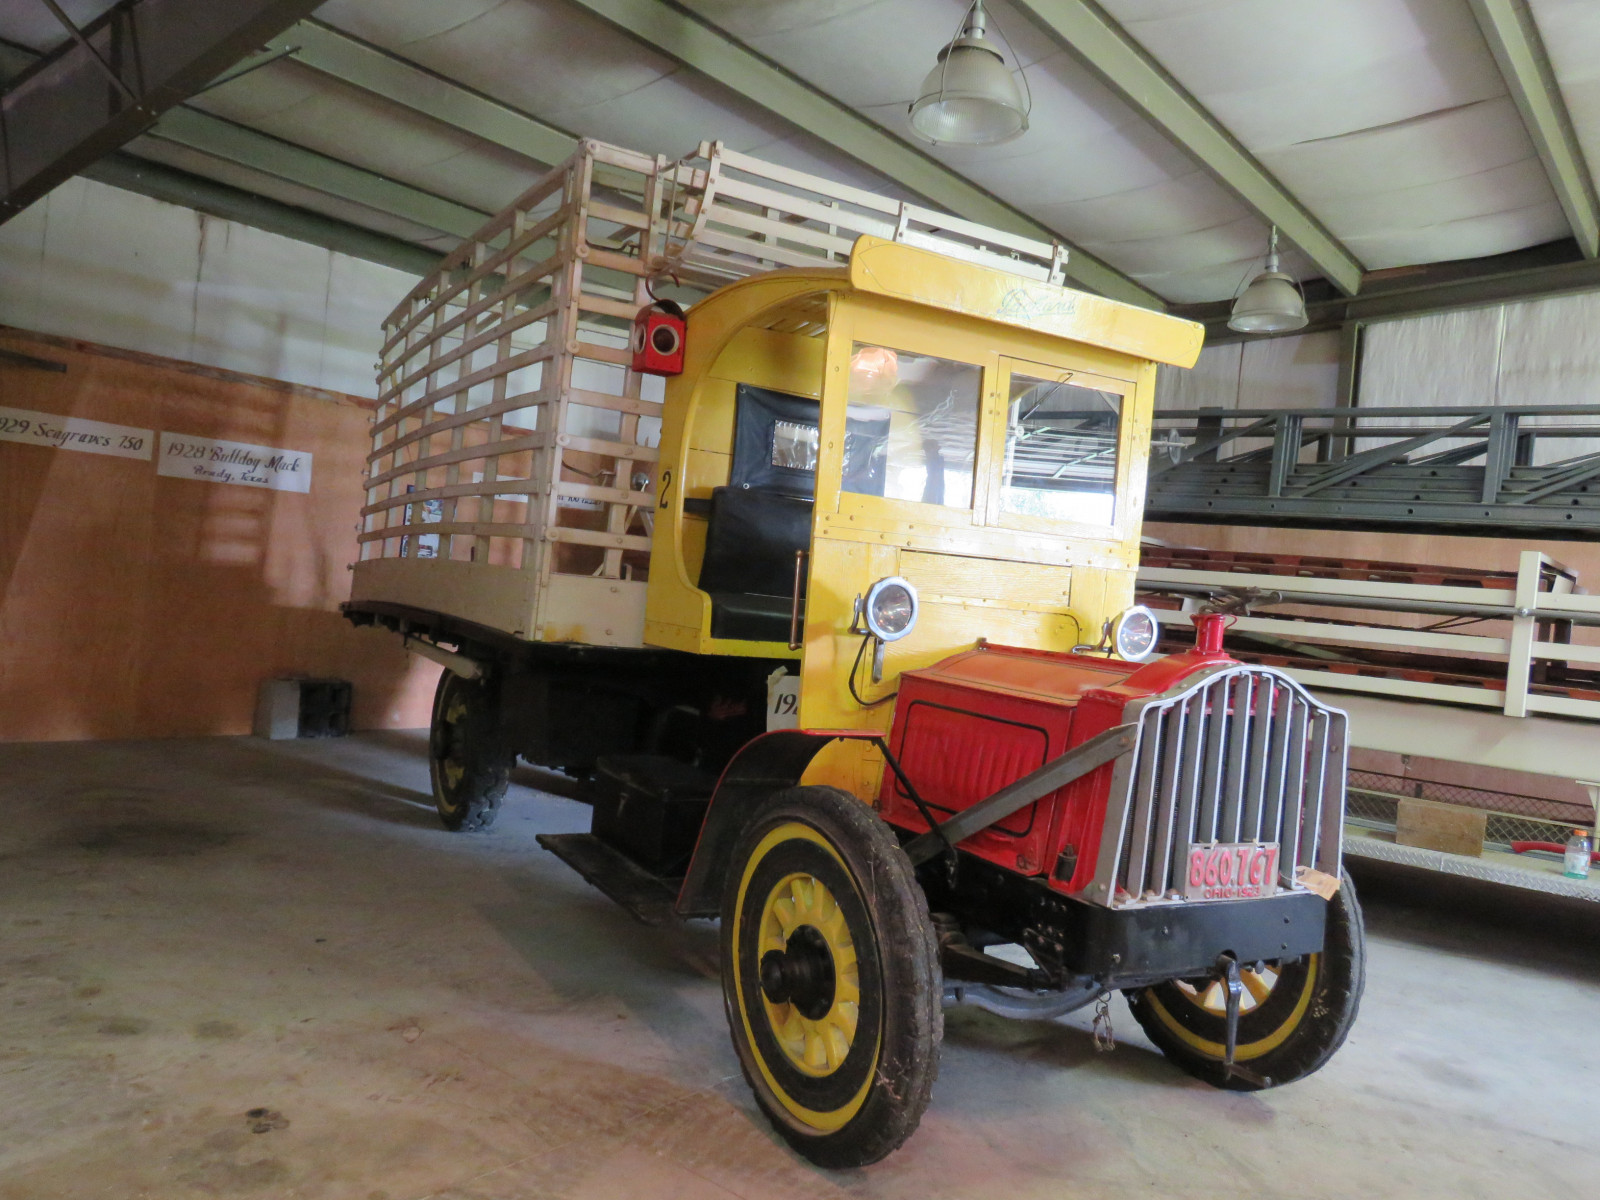 1923 Packard 2 ton Truck - Image 1